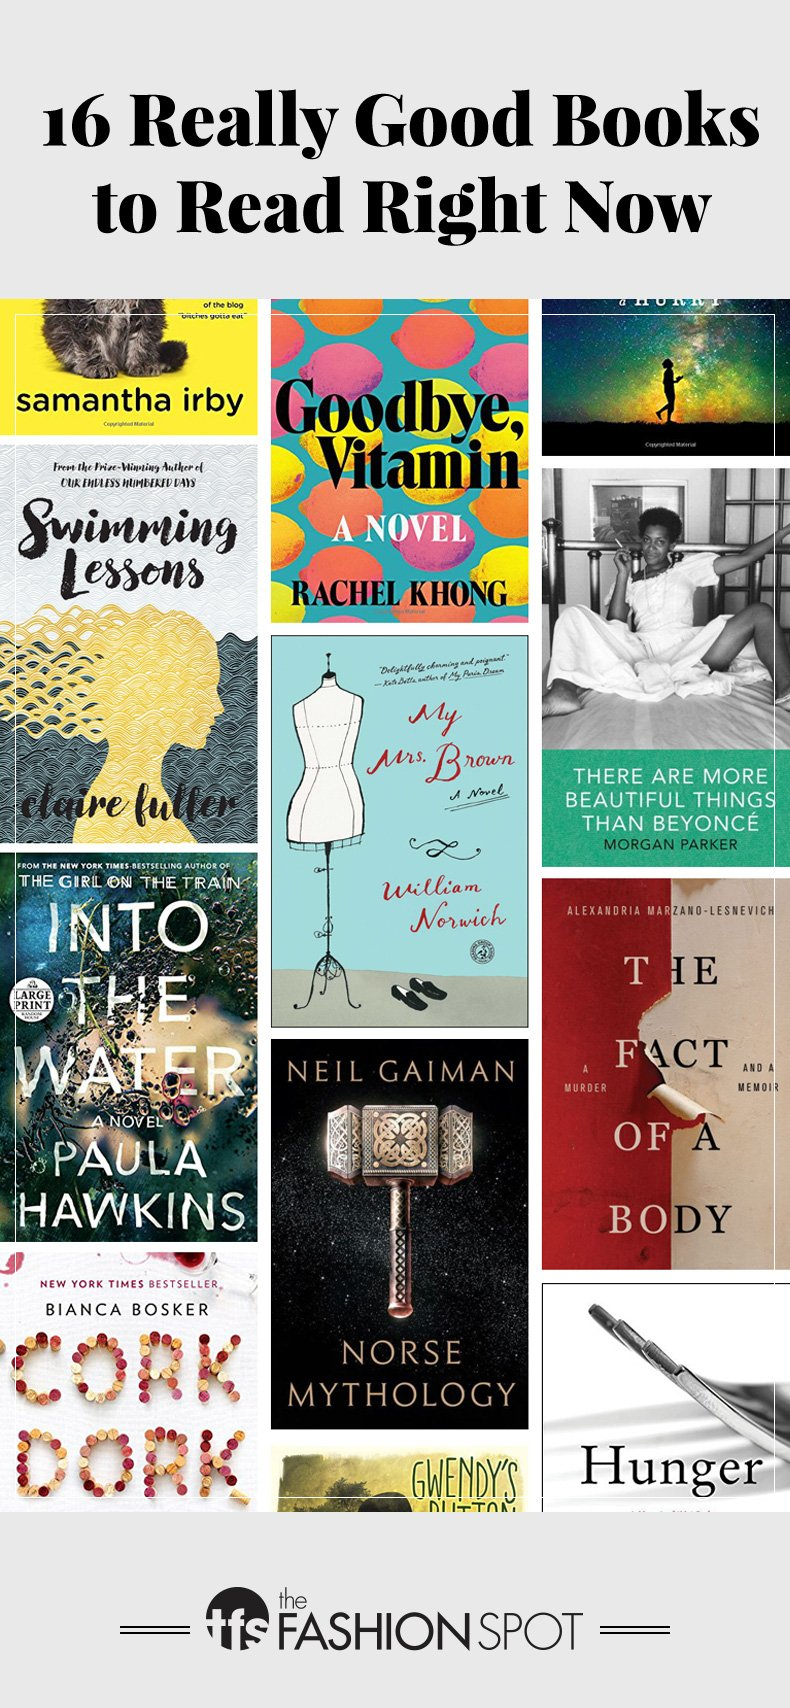 16 Really Good Books to Read in 2017